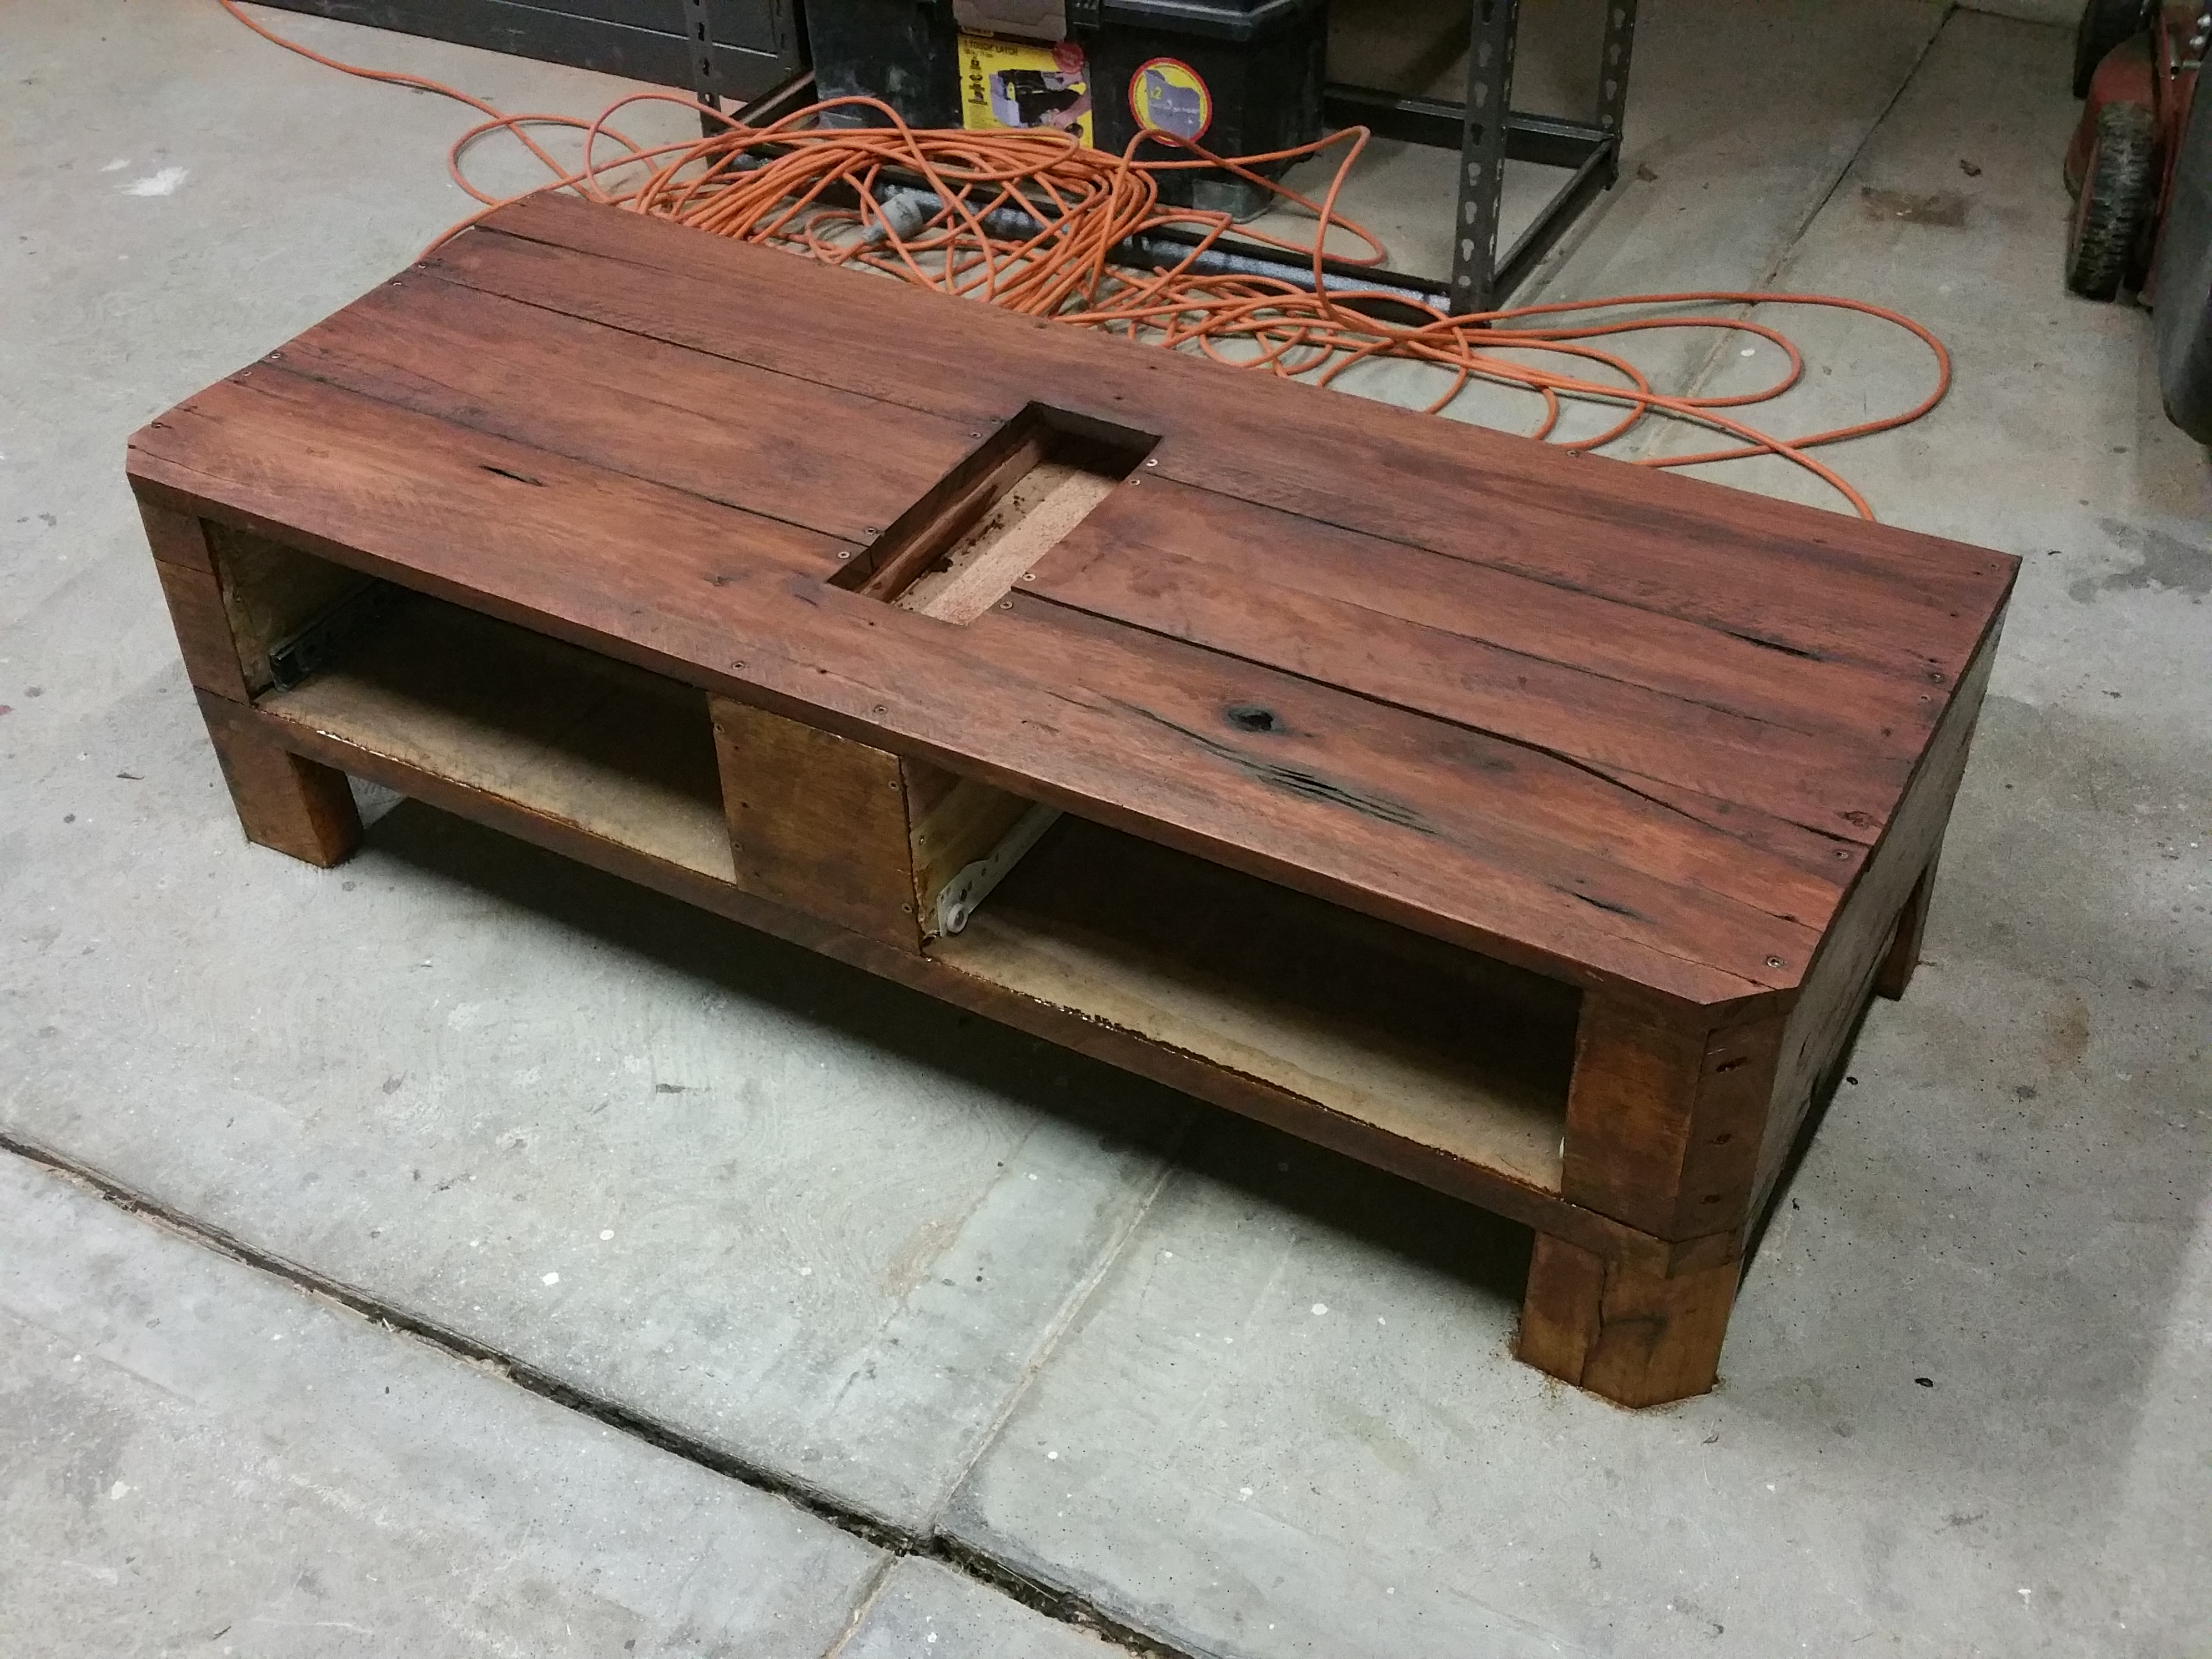 Picture of Staining the Table